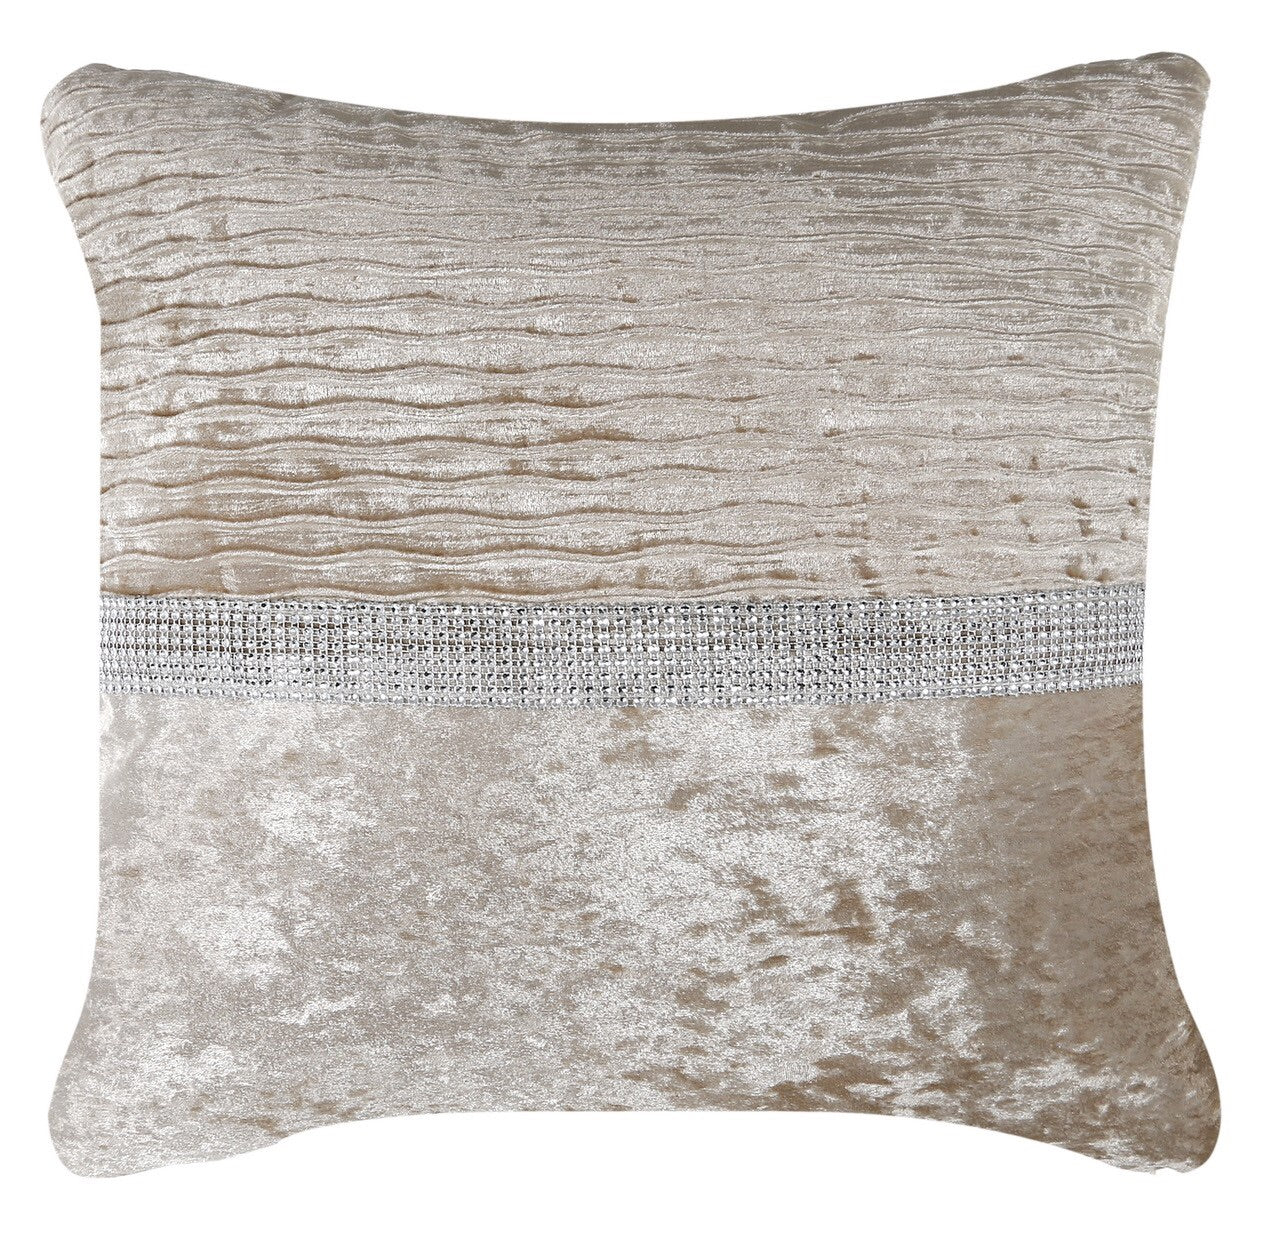 Champagne Crushed Velvet Cushion - Mirrored furniture - Sparkle Diamond - House of Sparkles